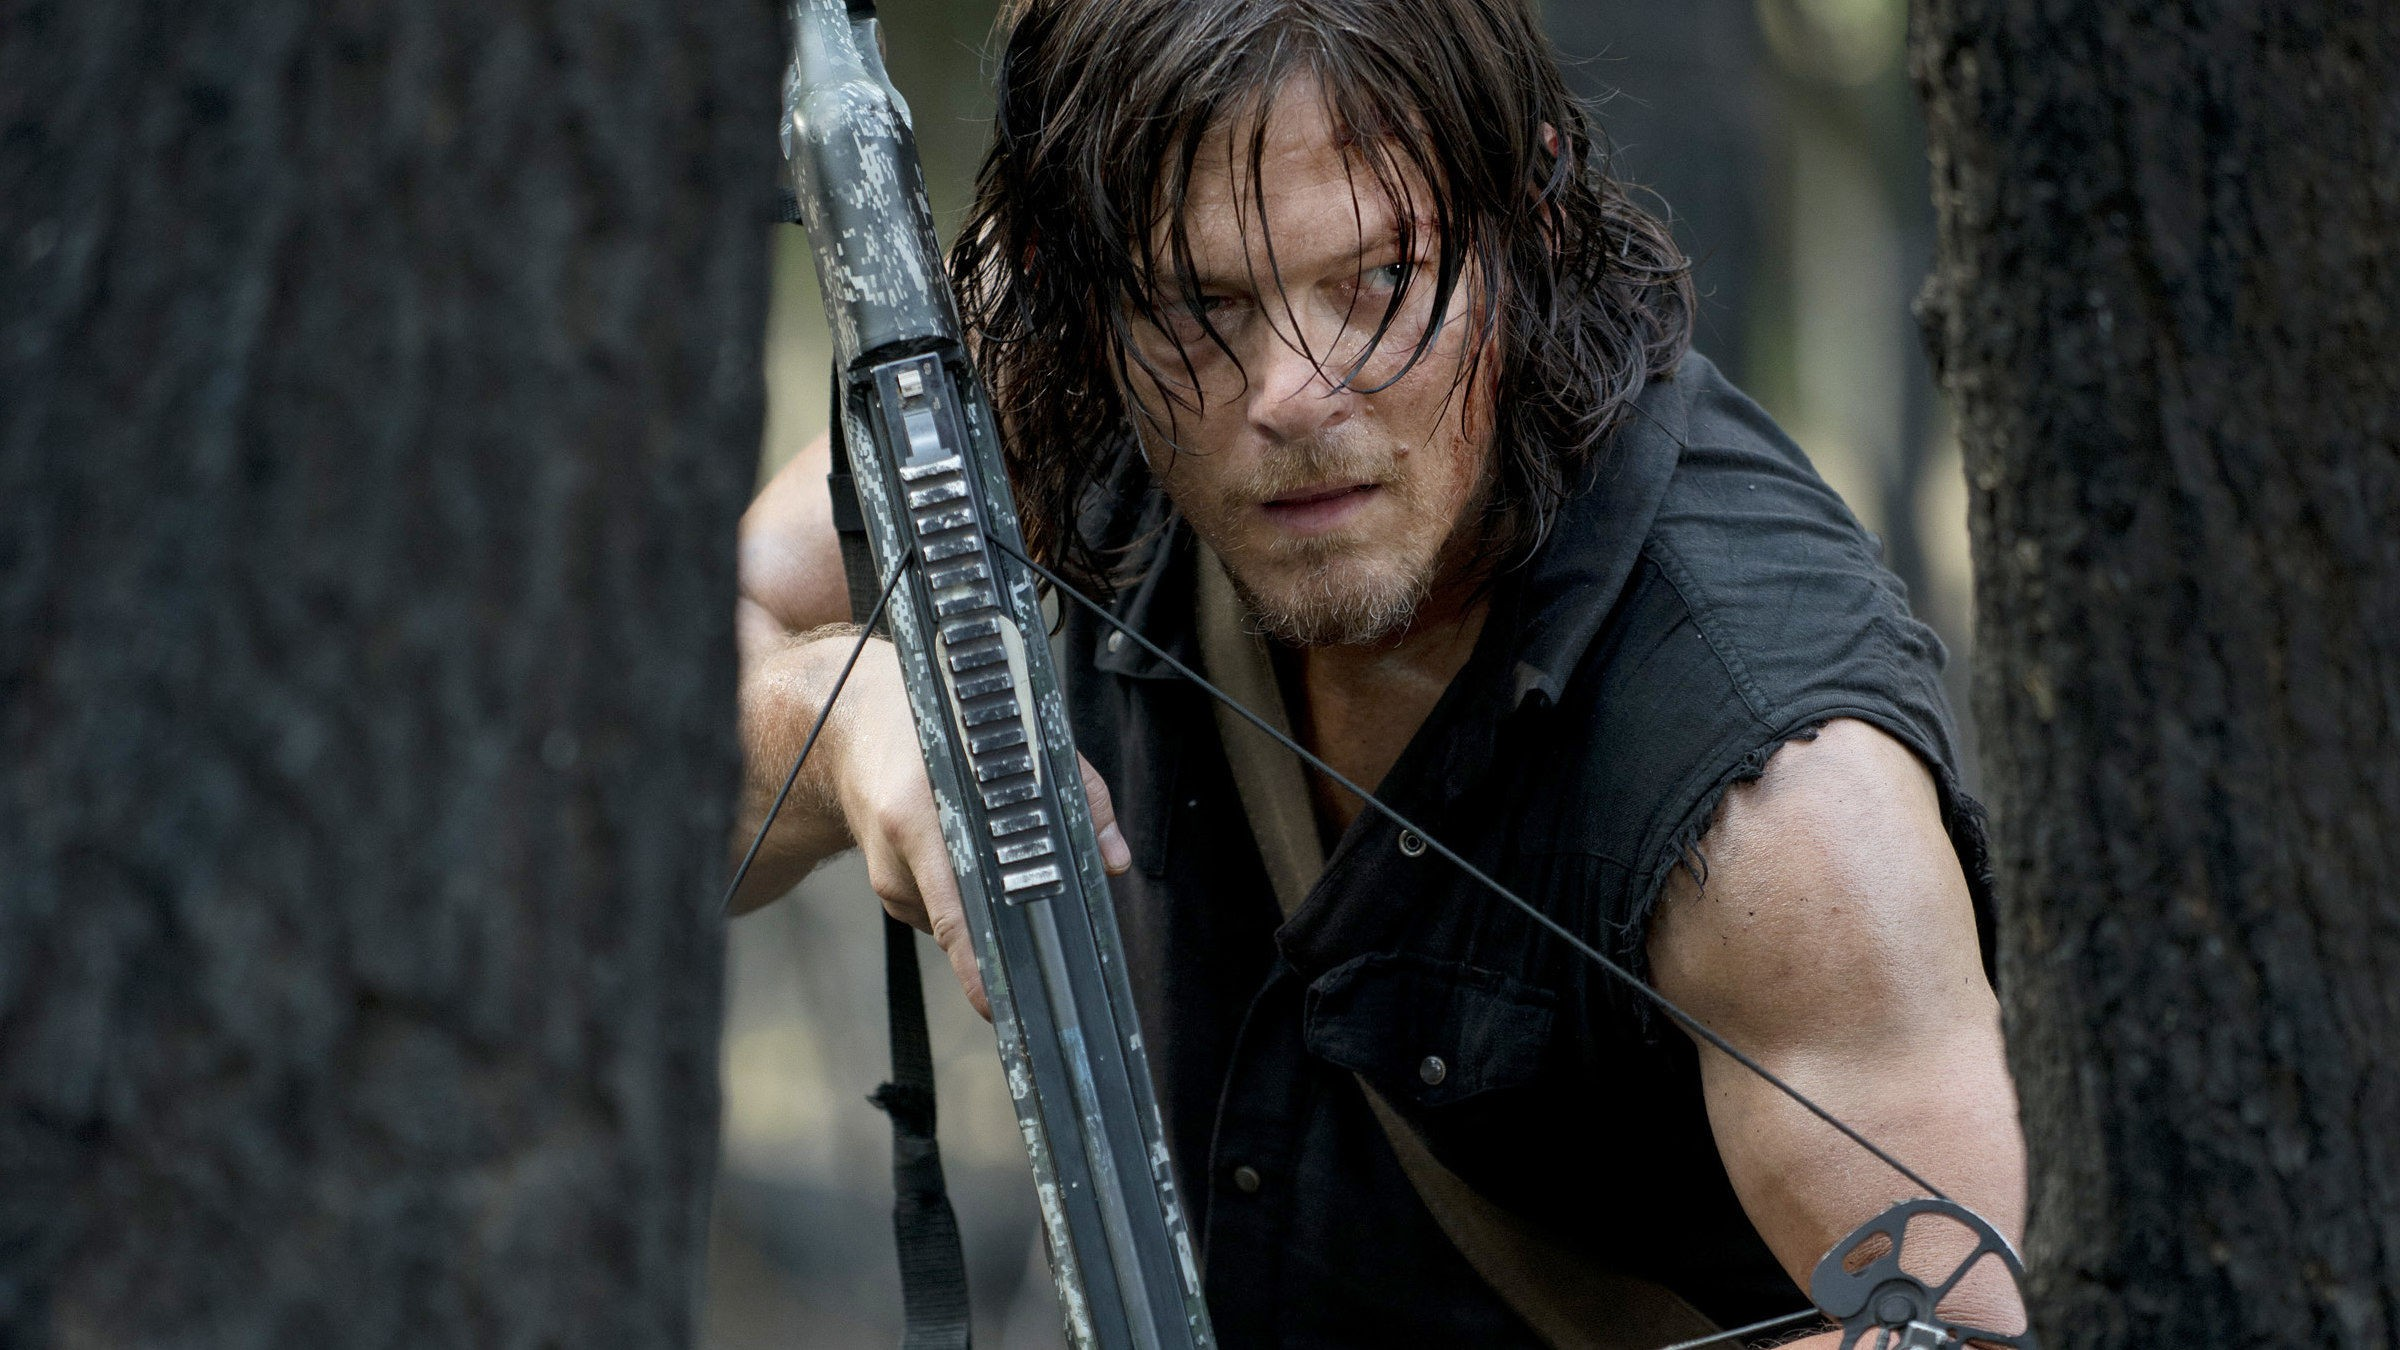 Daryl Dixon Wallpaper 1 Download Free Awesome HD Backgrounds For